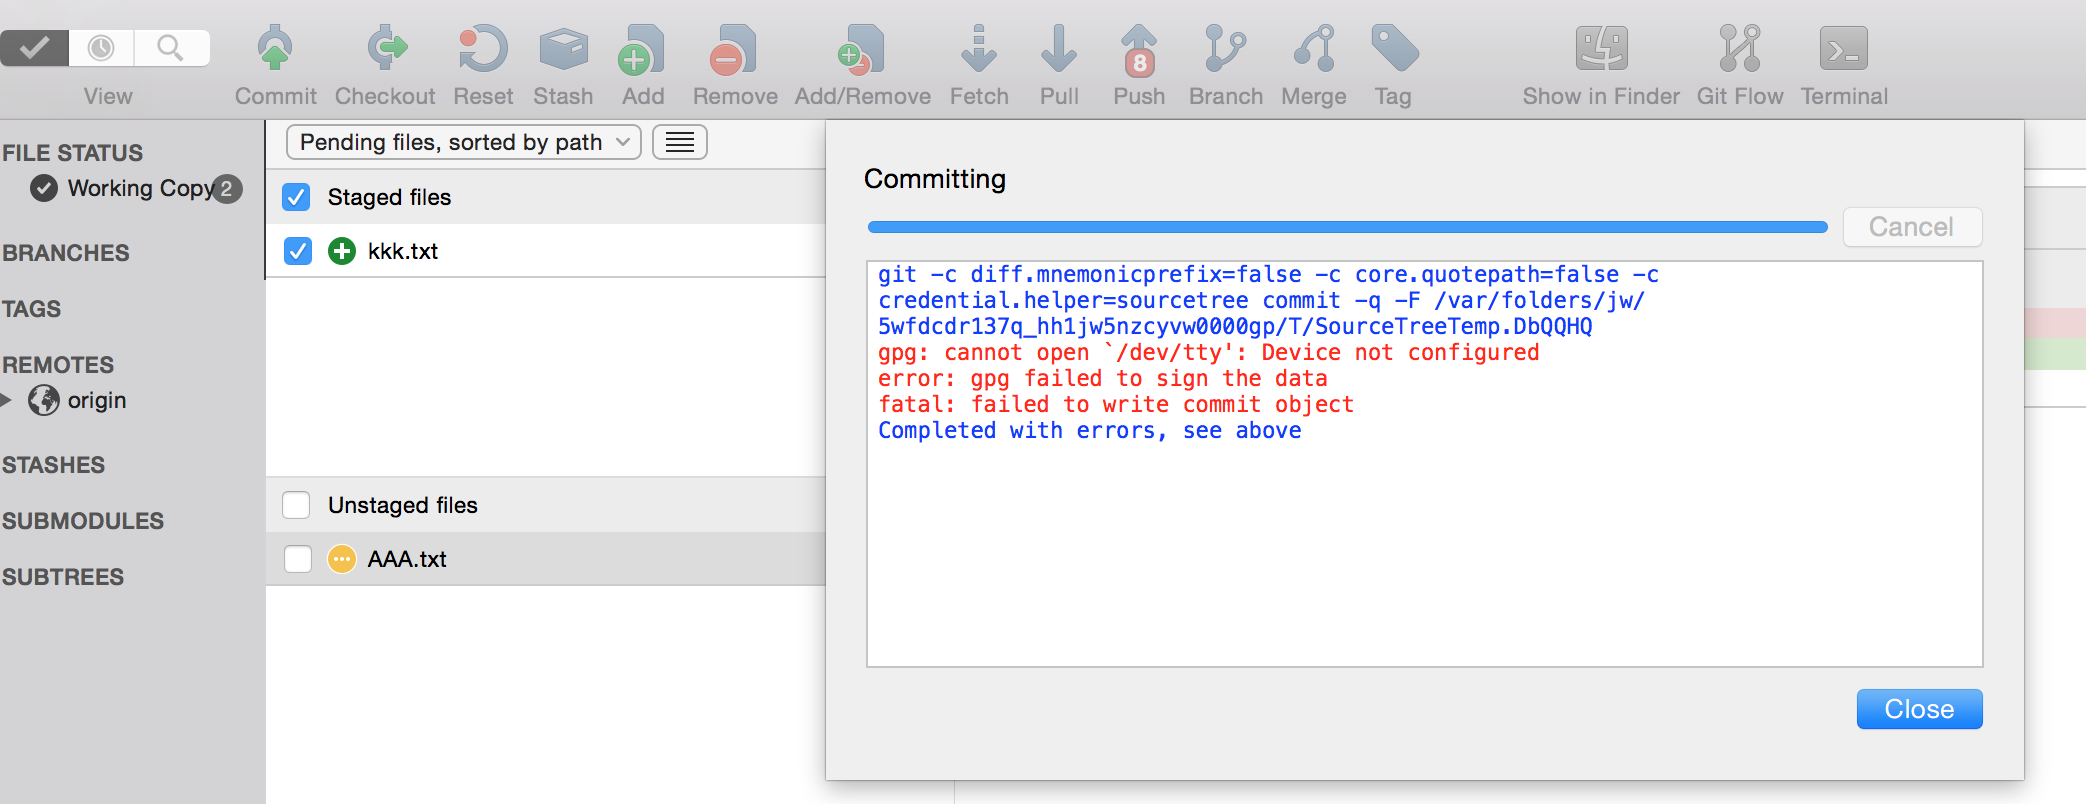 SourceTree commits fail when using Git signed commits - Atlassian